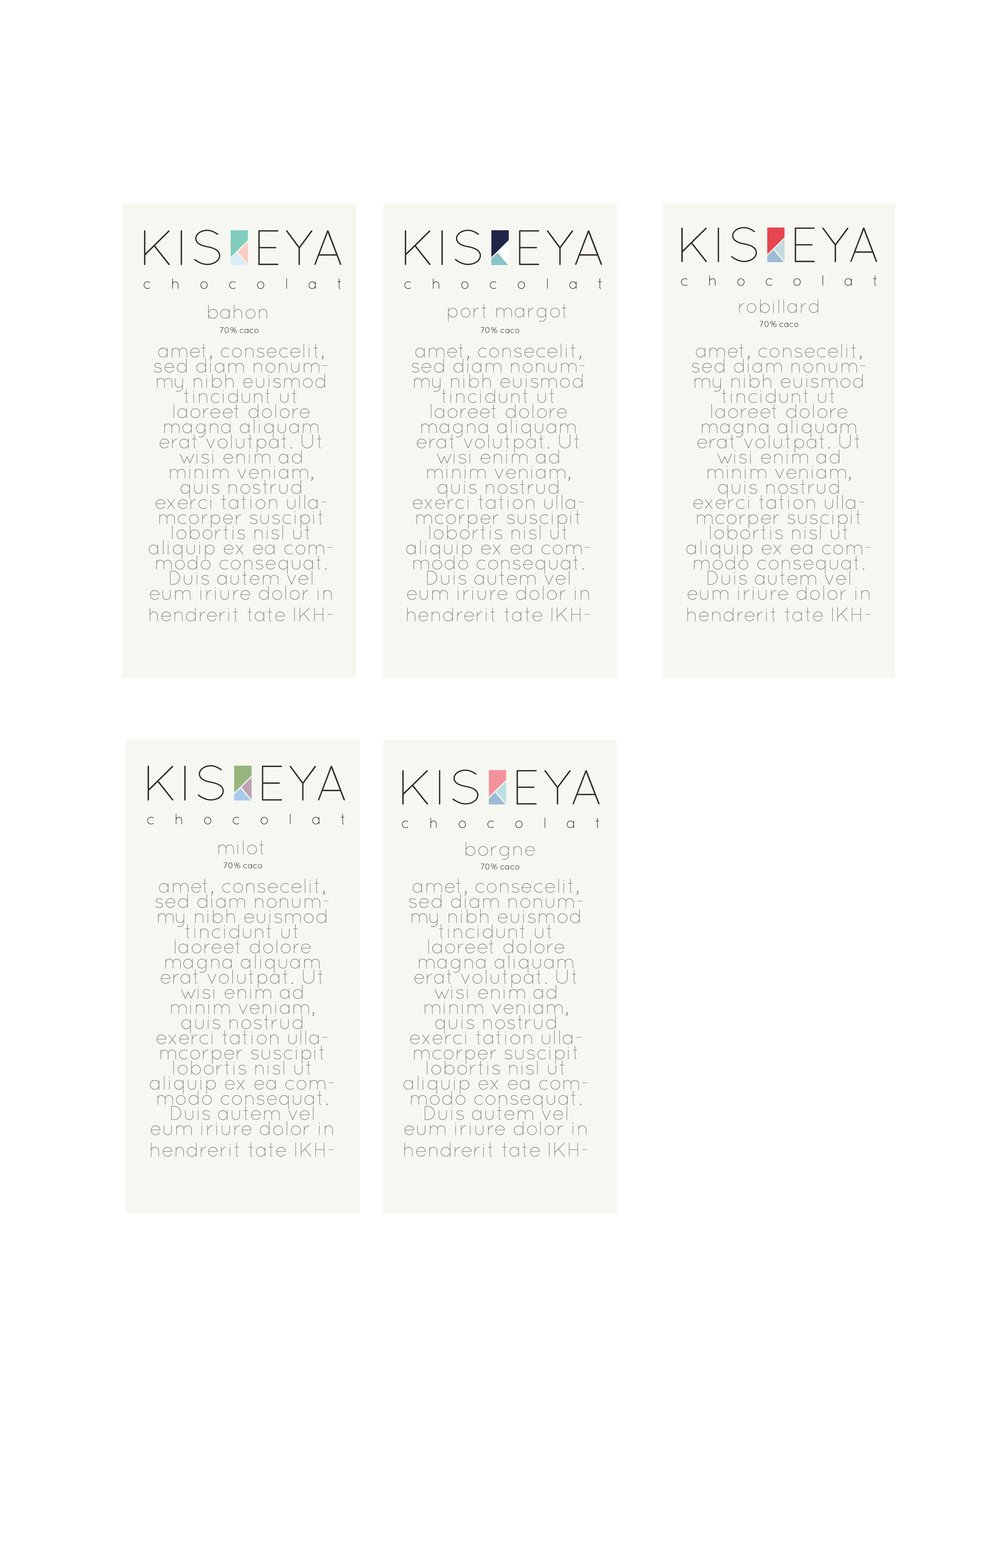 Kiskeya Packaging layout for Kris Logos on-05.jpg